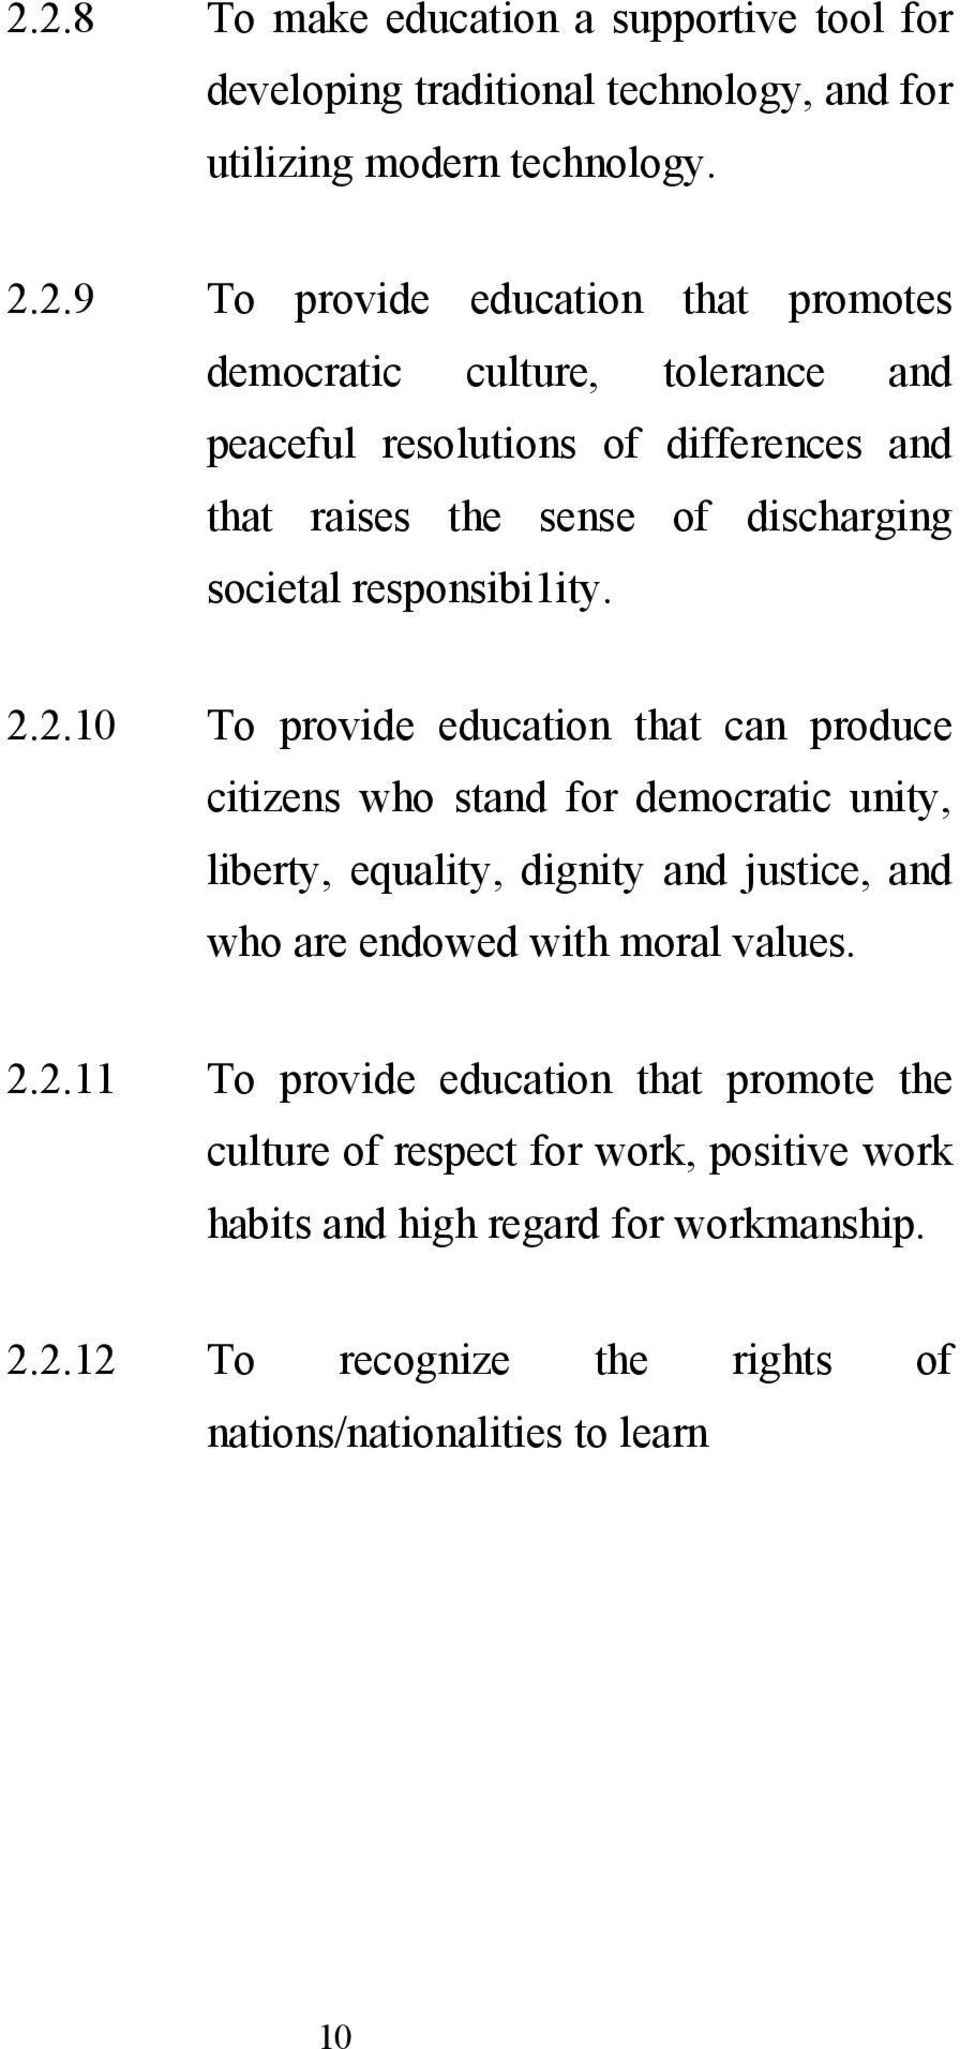 2.10 To provide education that can produce citizens who stand for democratic unity, liberty, equality, dignity and justice, and who are endowed with moral values.